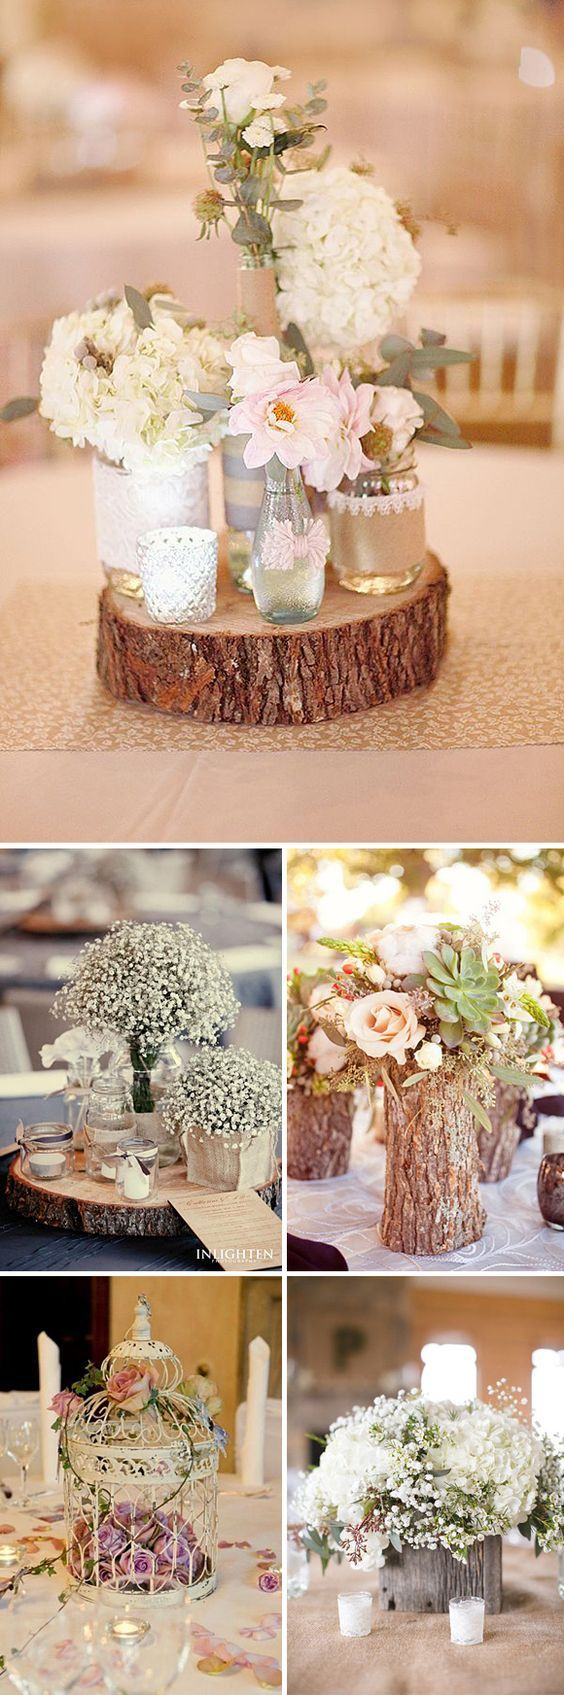 rustic country wedding centerpieces / http://www.himisspuff.com/country-rustic-wedding-ideas/6/